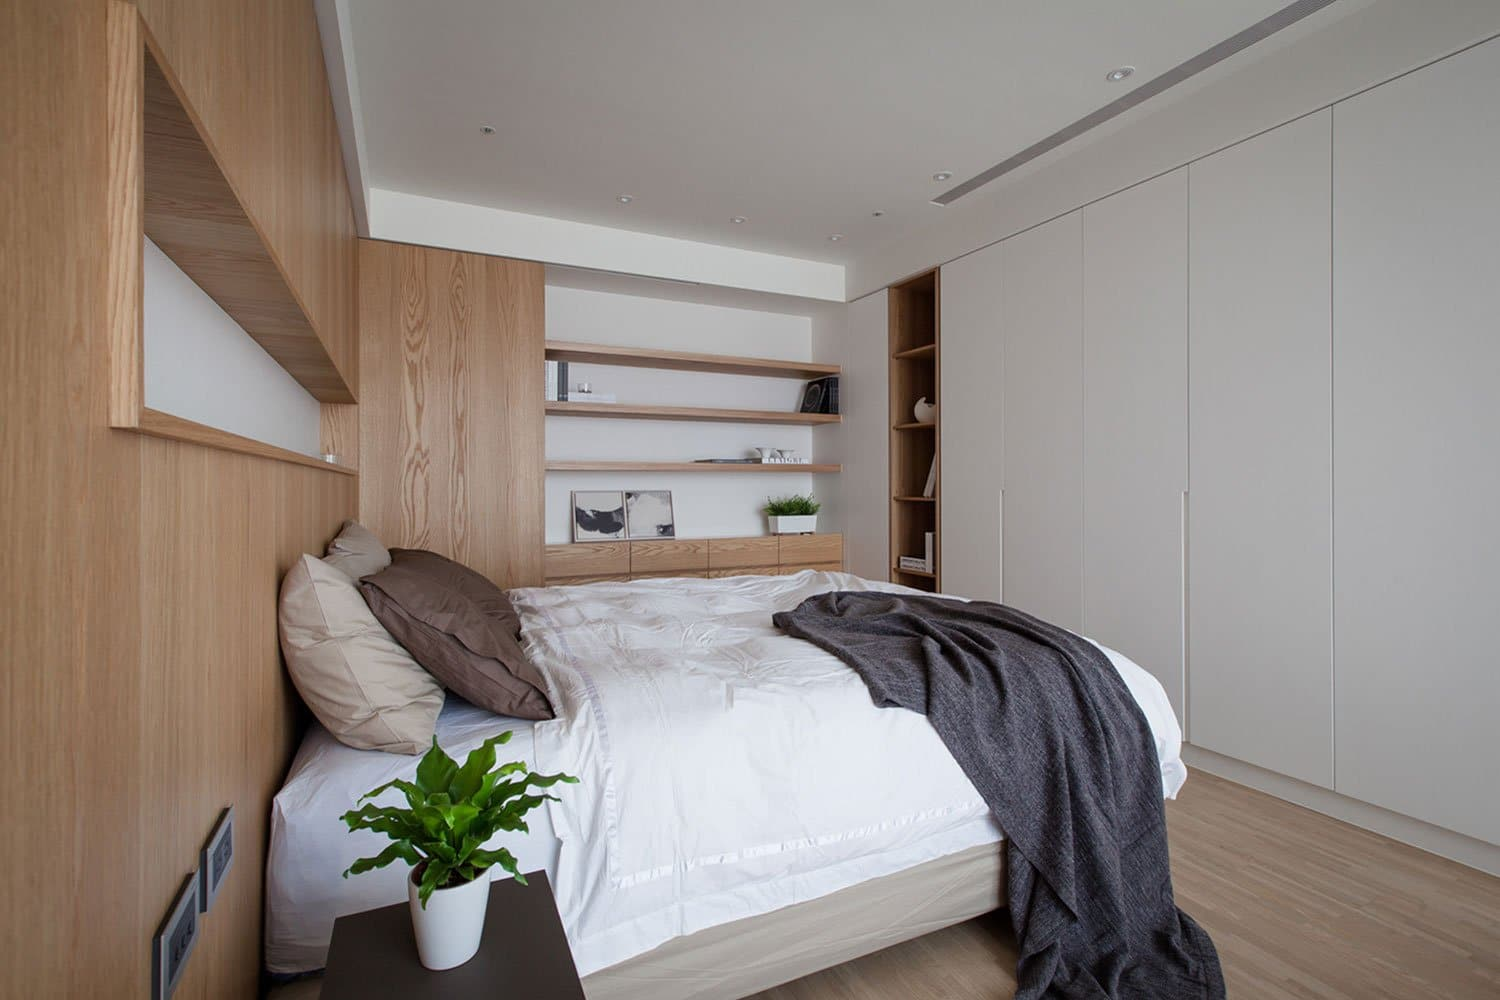 Bedroom Design 3